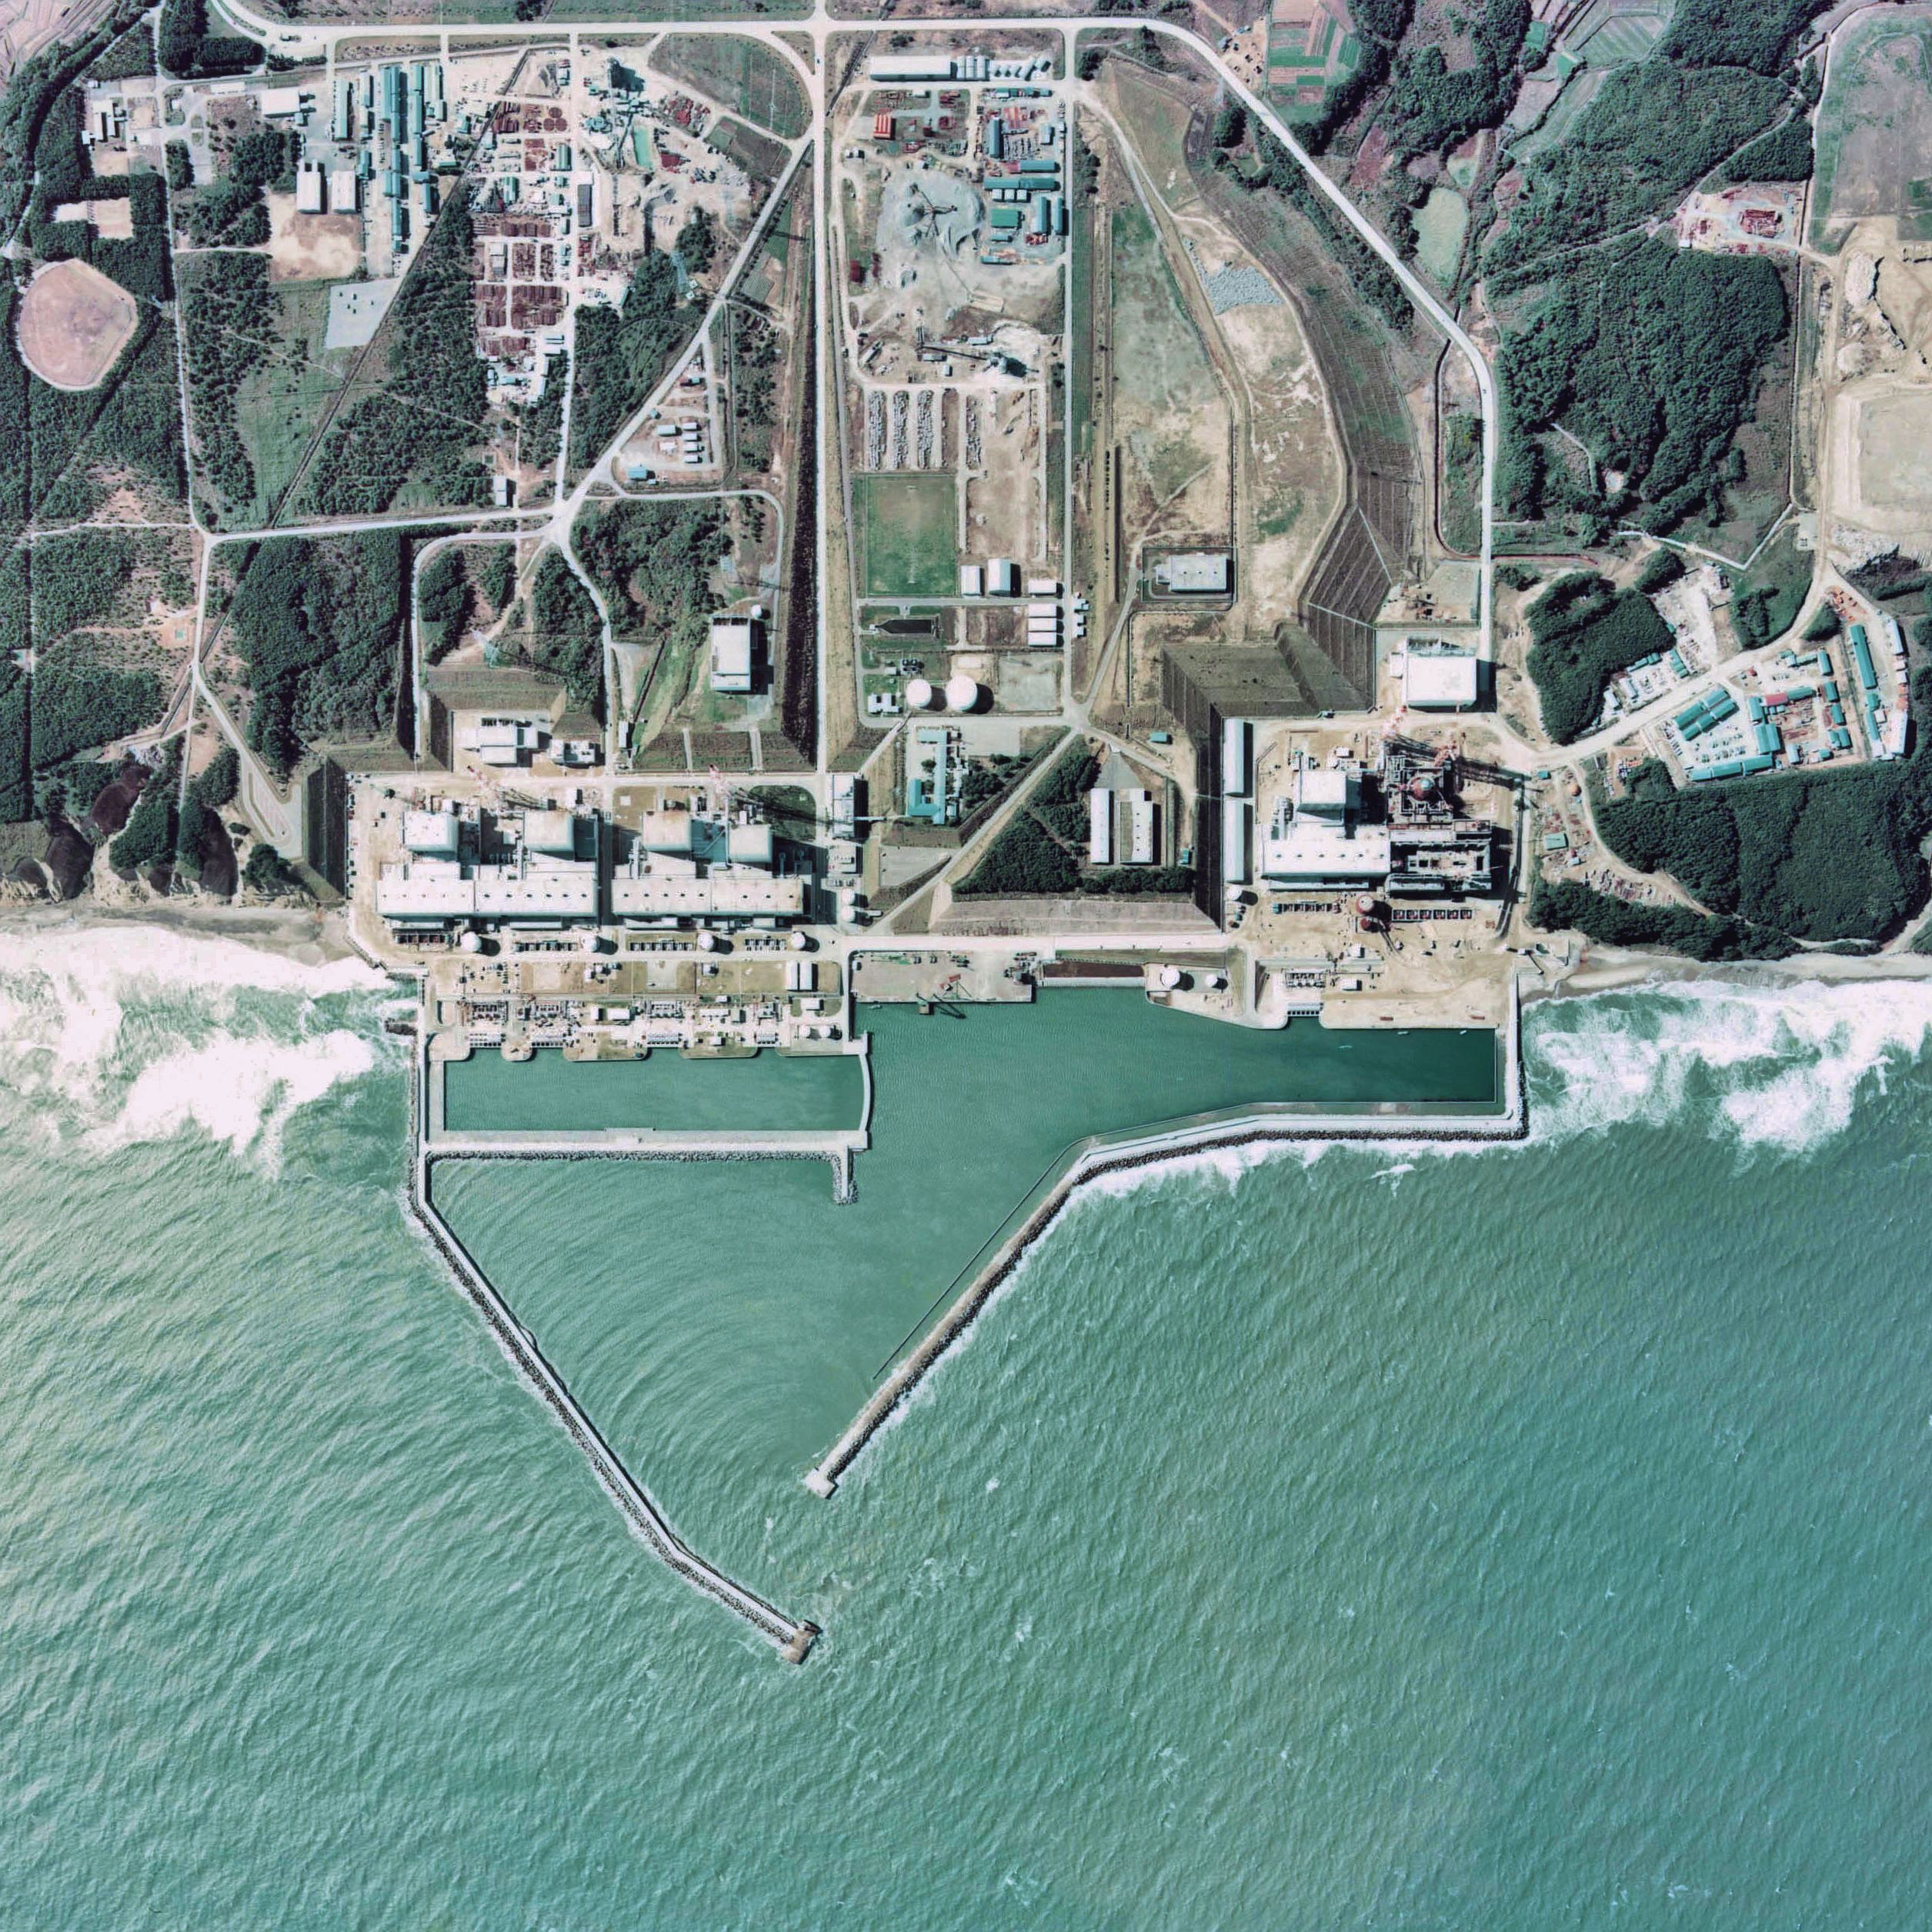 http://upload.wikimedia.org/wikipedia/commons/e/e8/Fukushima_I_NPP_1975.jpg